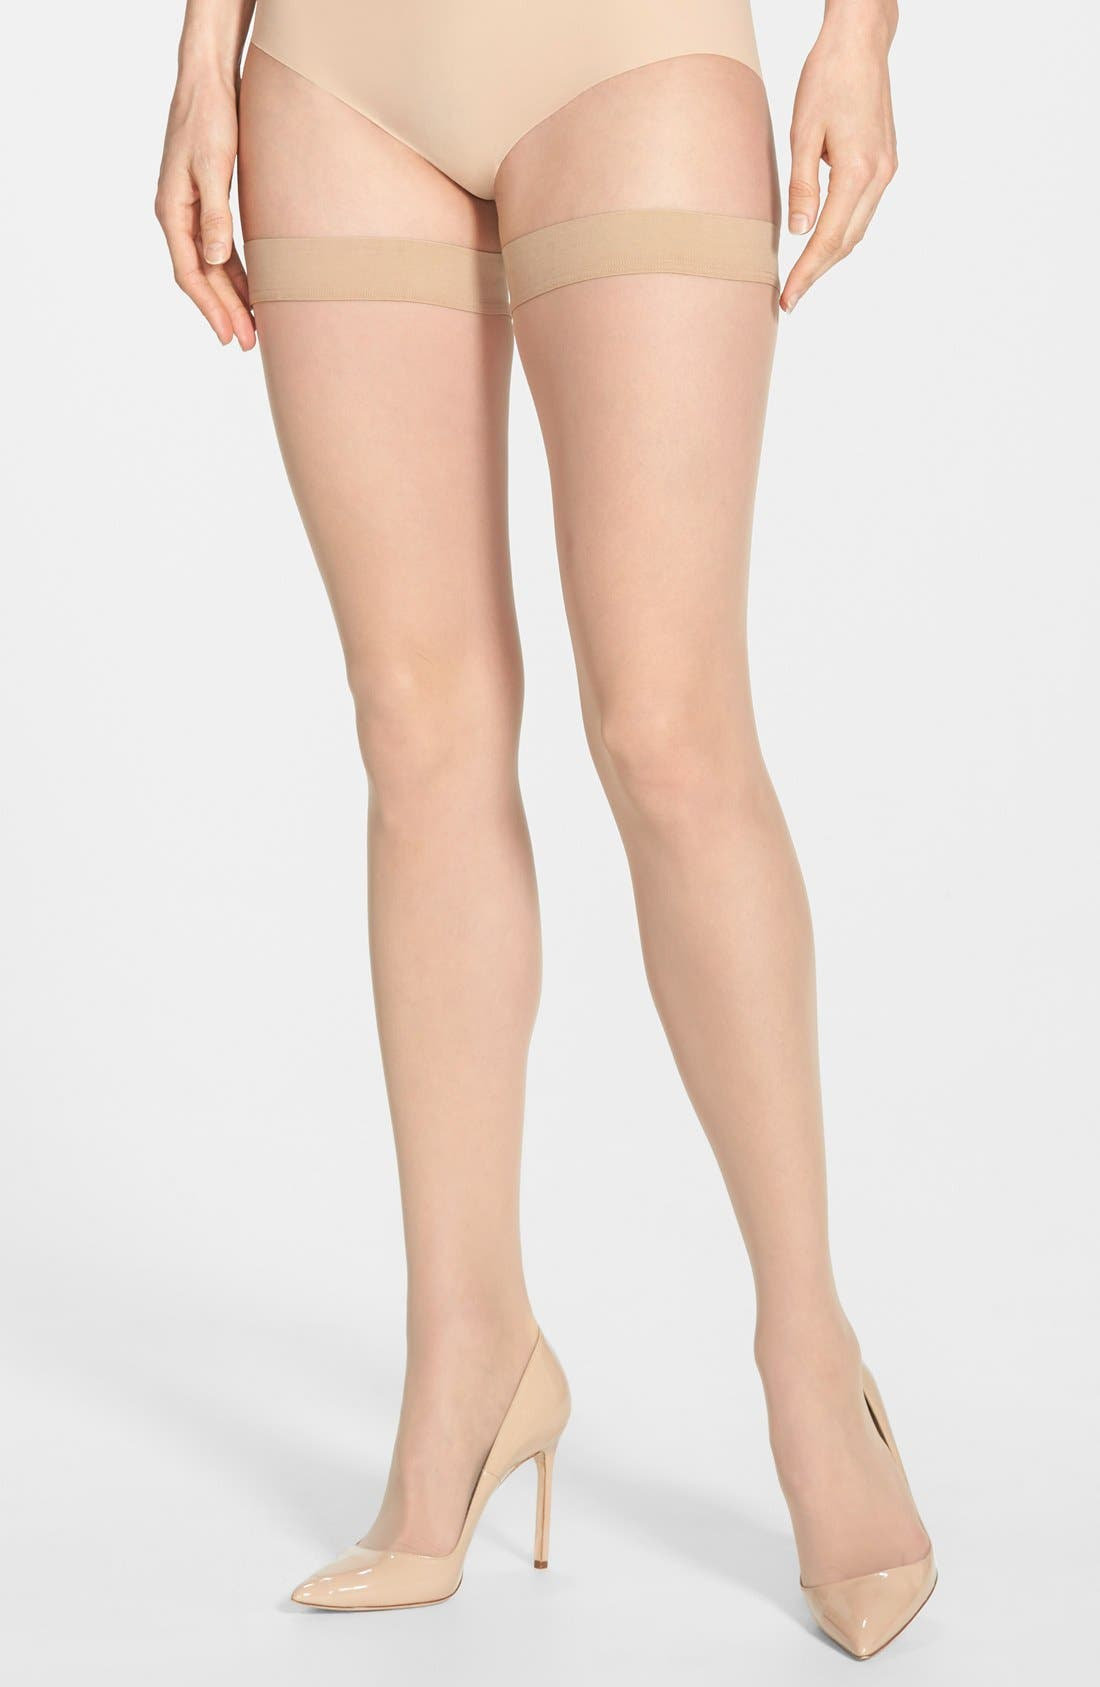 Individual 10 Stay-Up Stockings,                         Main,                         color, 261